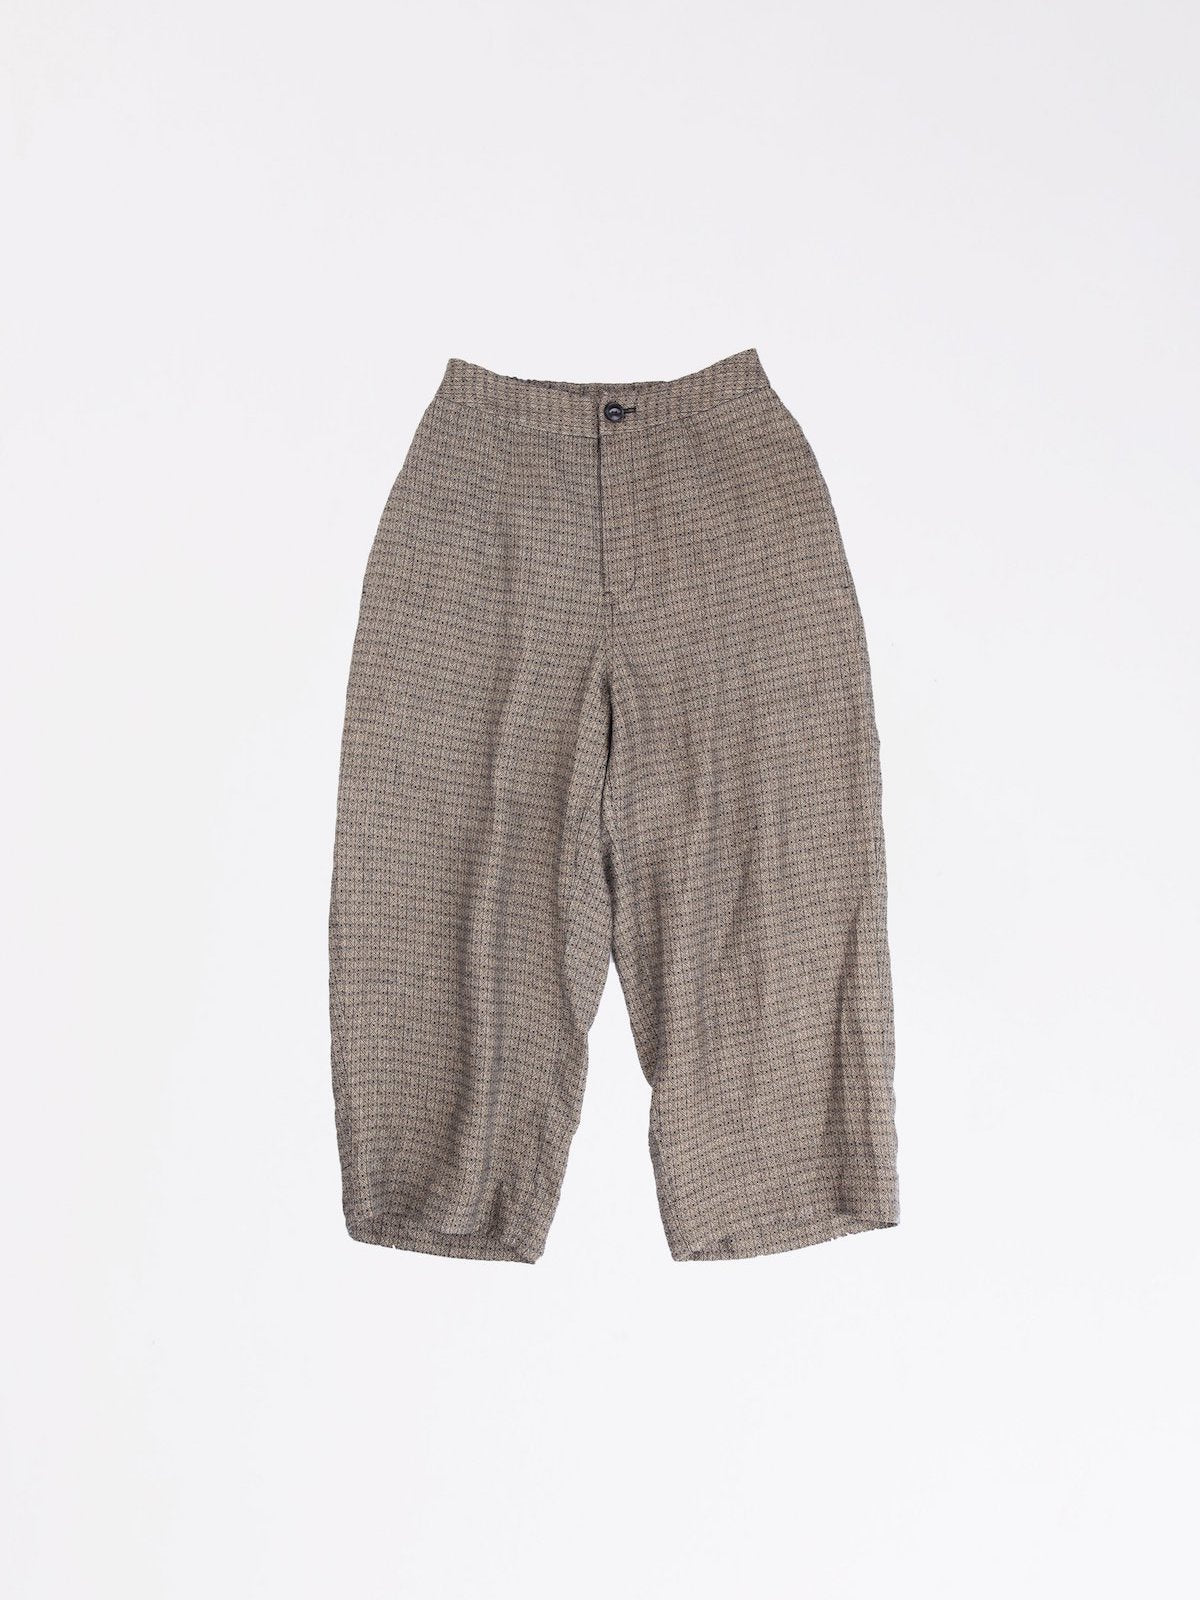 Arts & Science back yoke gather Trousers